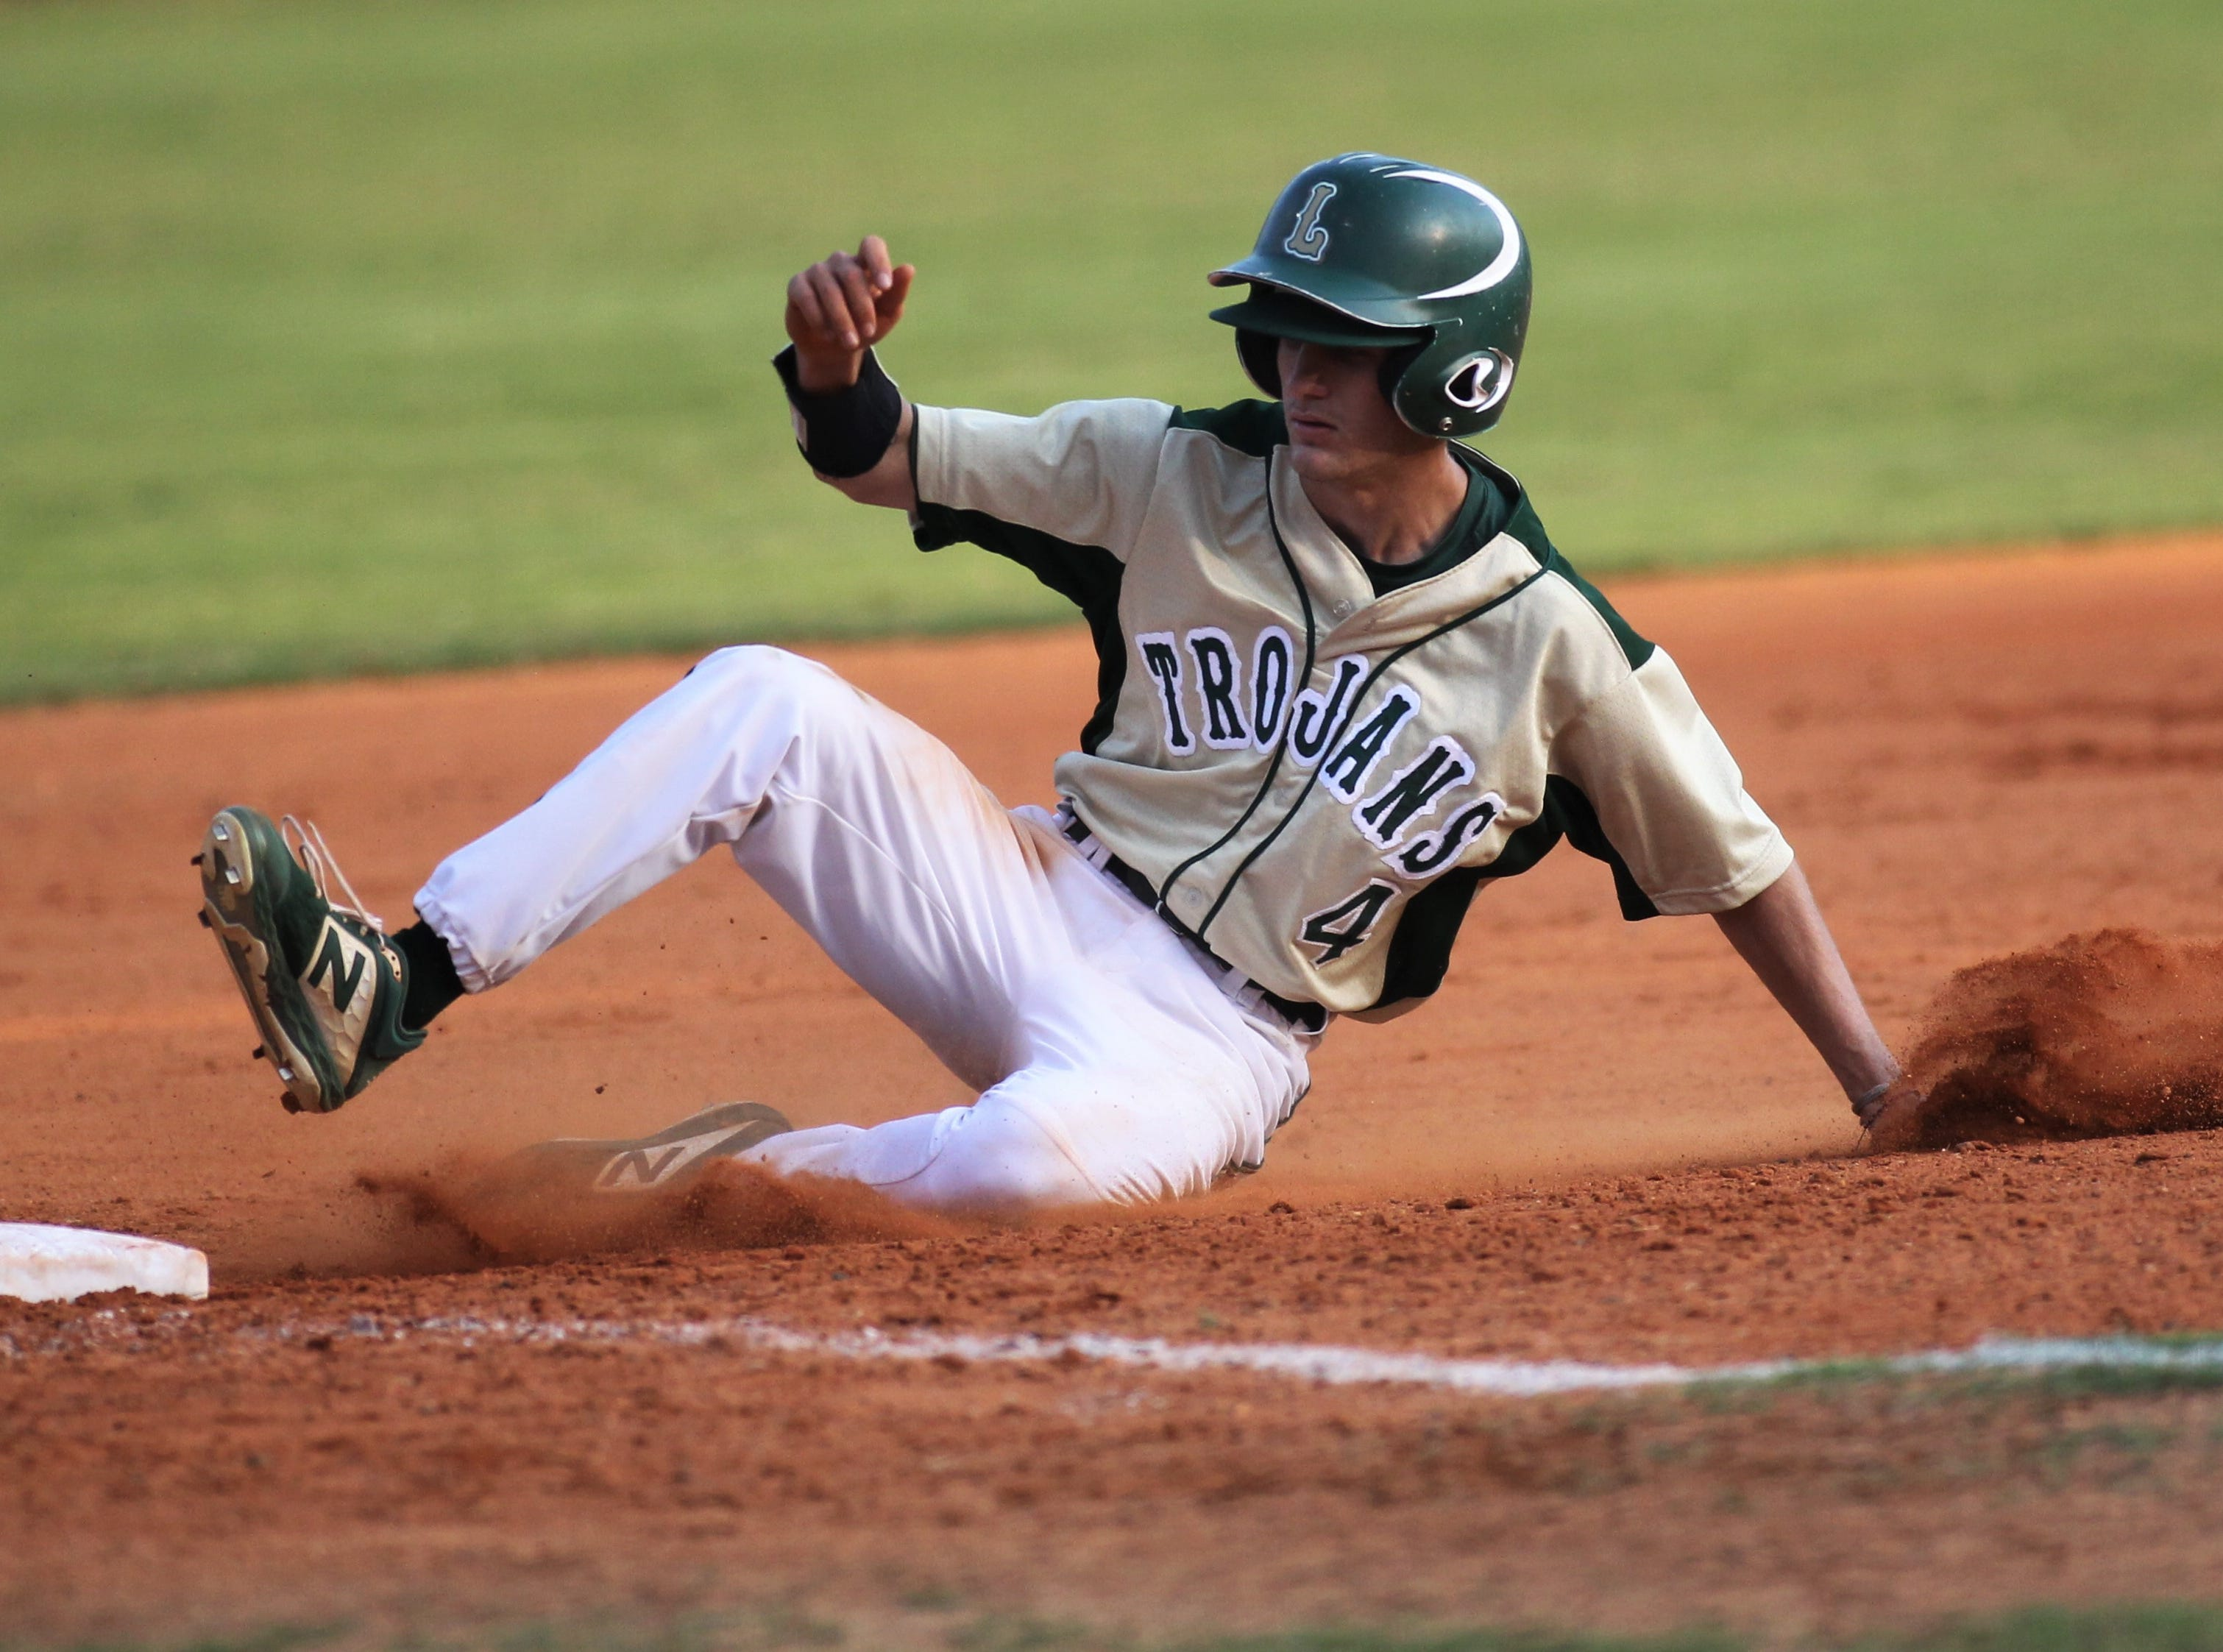 Lincoln senior Claeb Kittrell slides in safely at third base as Lincoln baseball beat Chiles 5-4  in 10 innings during a District 2-8A championship game on Thursday, May 9, 2019.